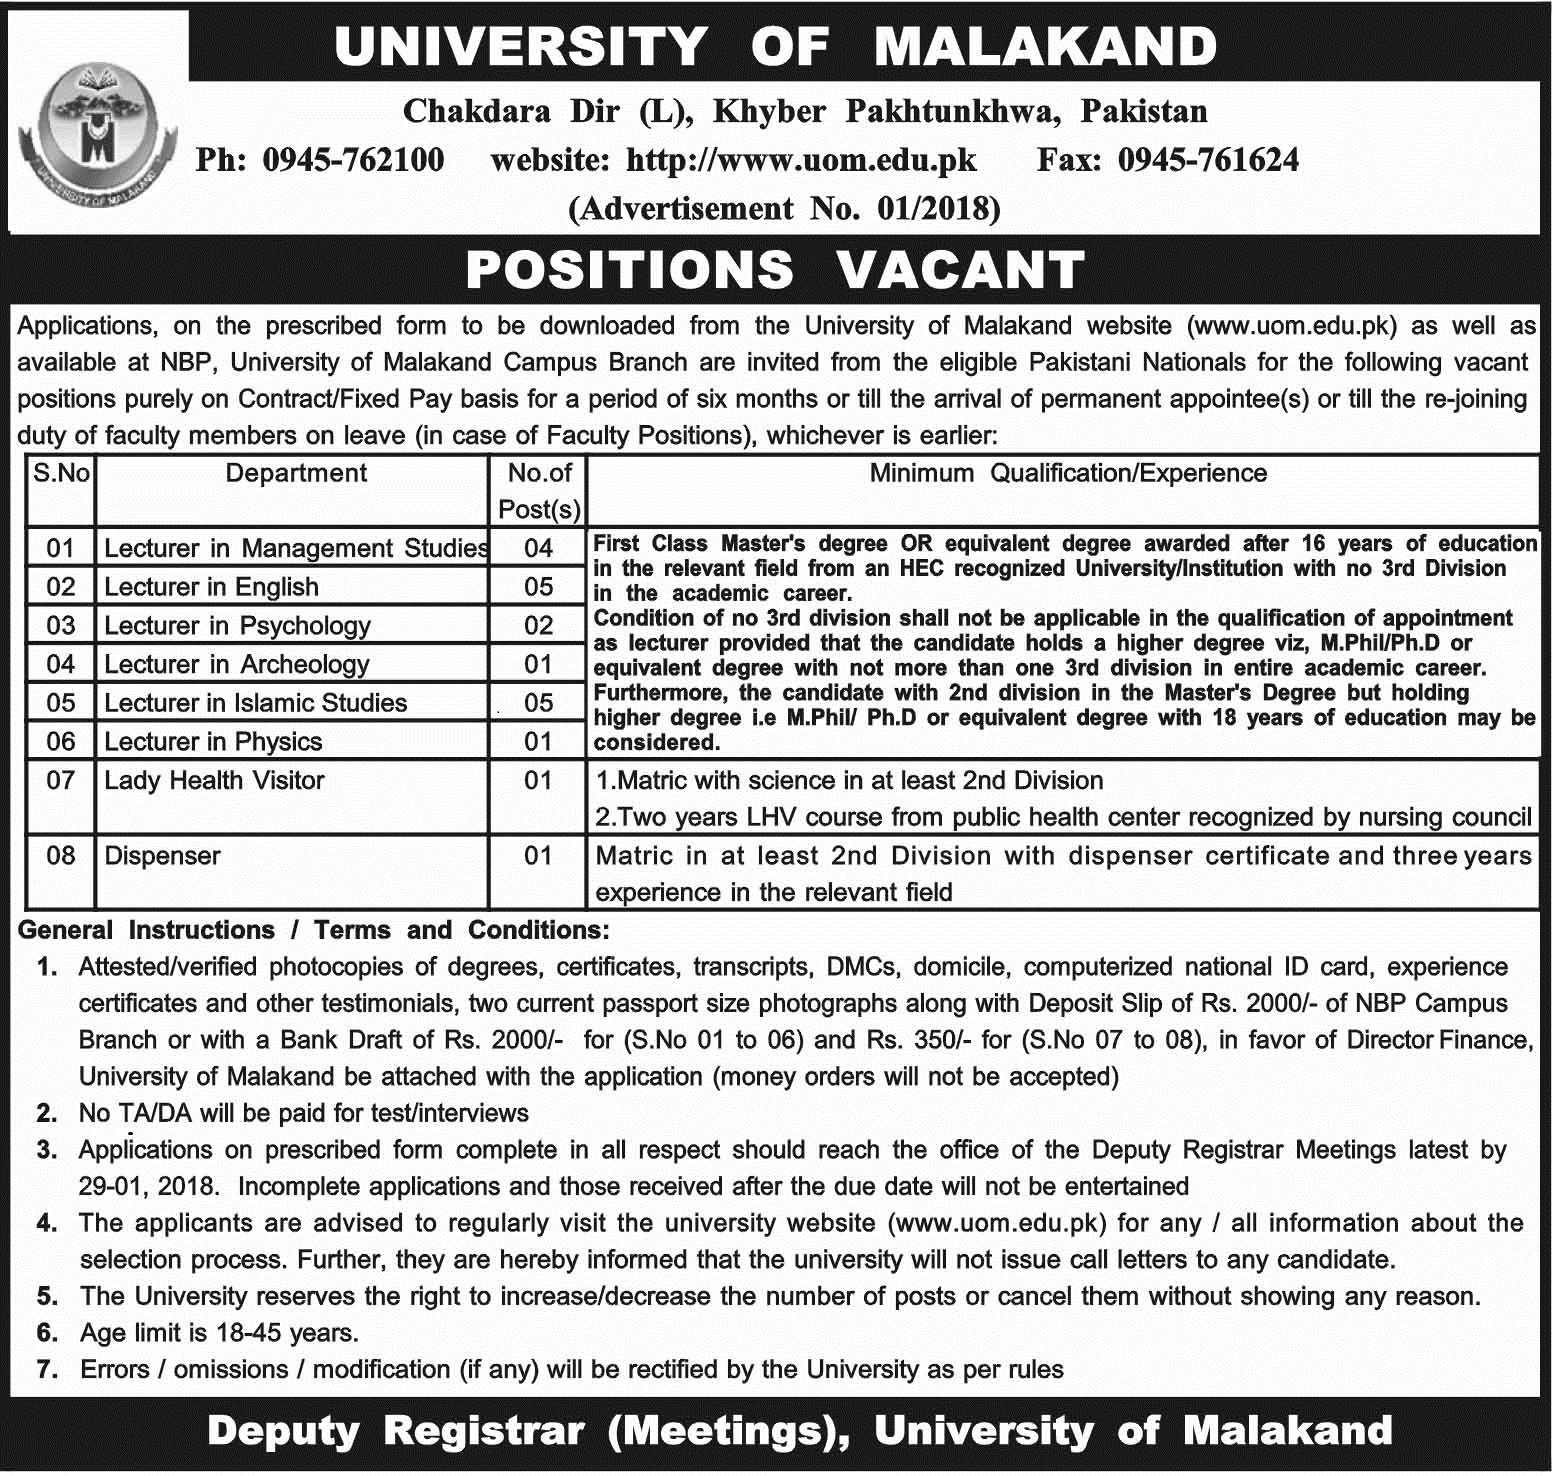 Today Jobs in University of Malakan www.uom.edu.pk